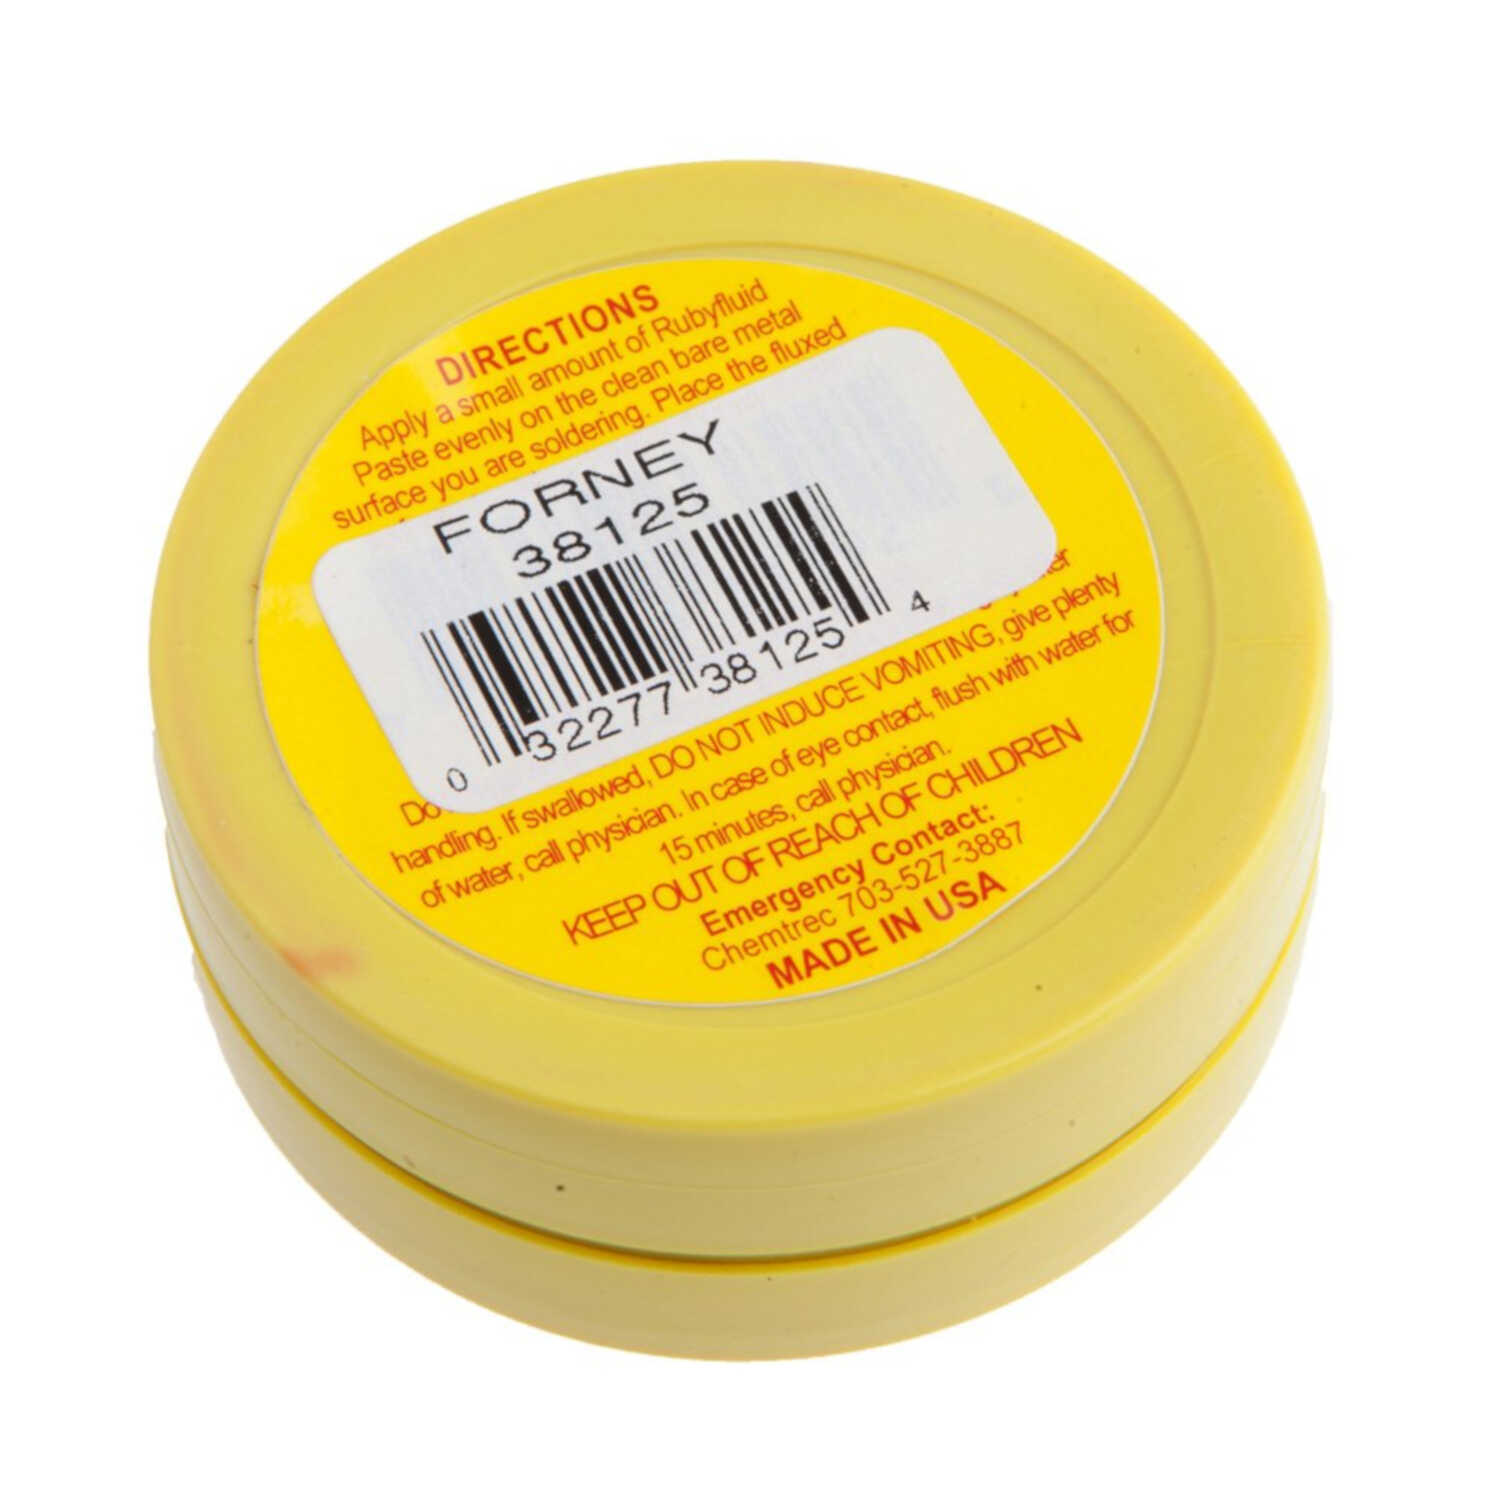 Forney  1.7 oz. Lead-Free Soldering and Tinning Paste Flux  Zinc Chloride  1 pc.